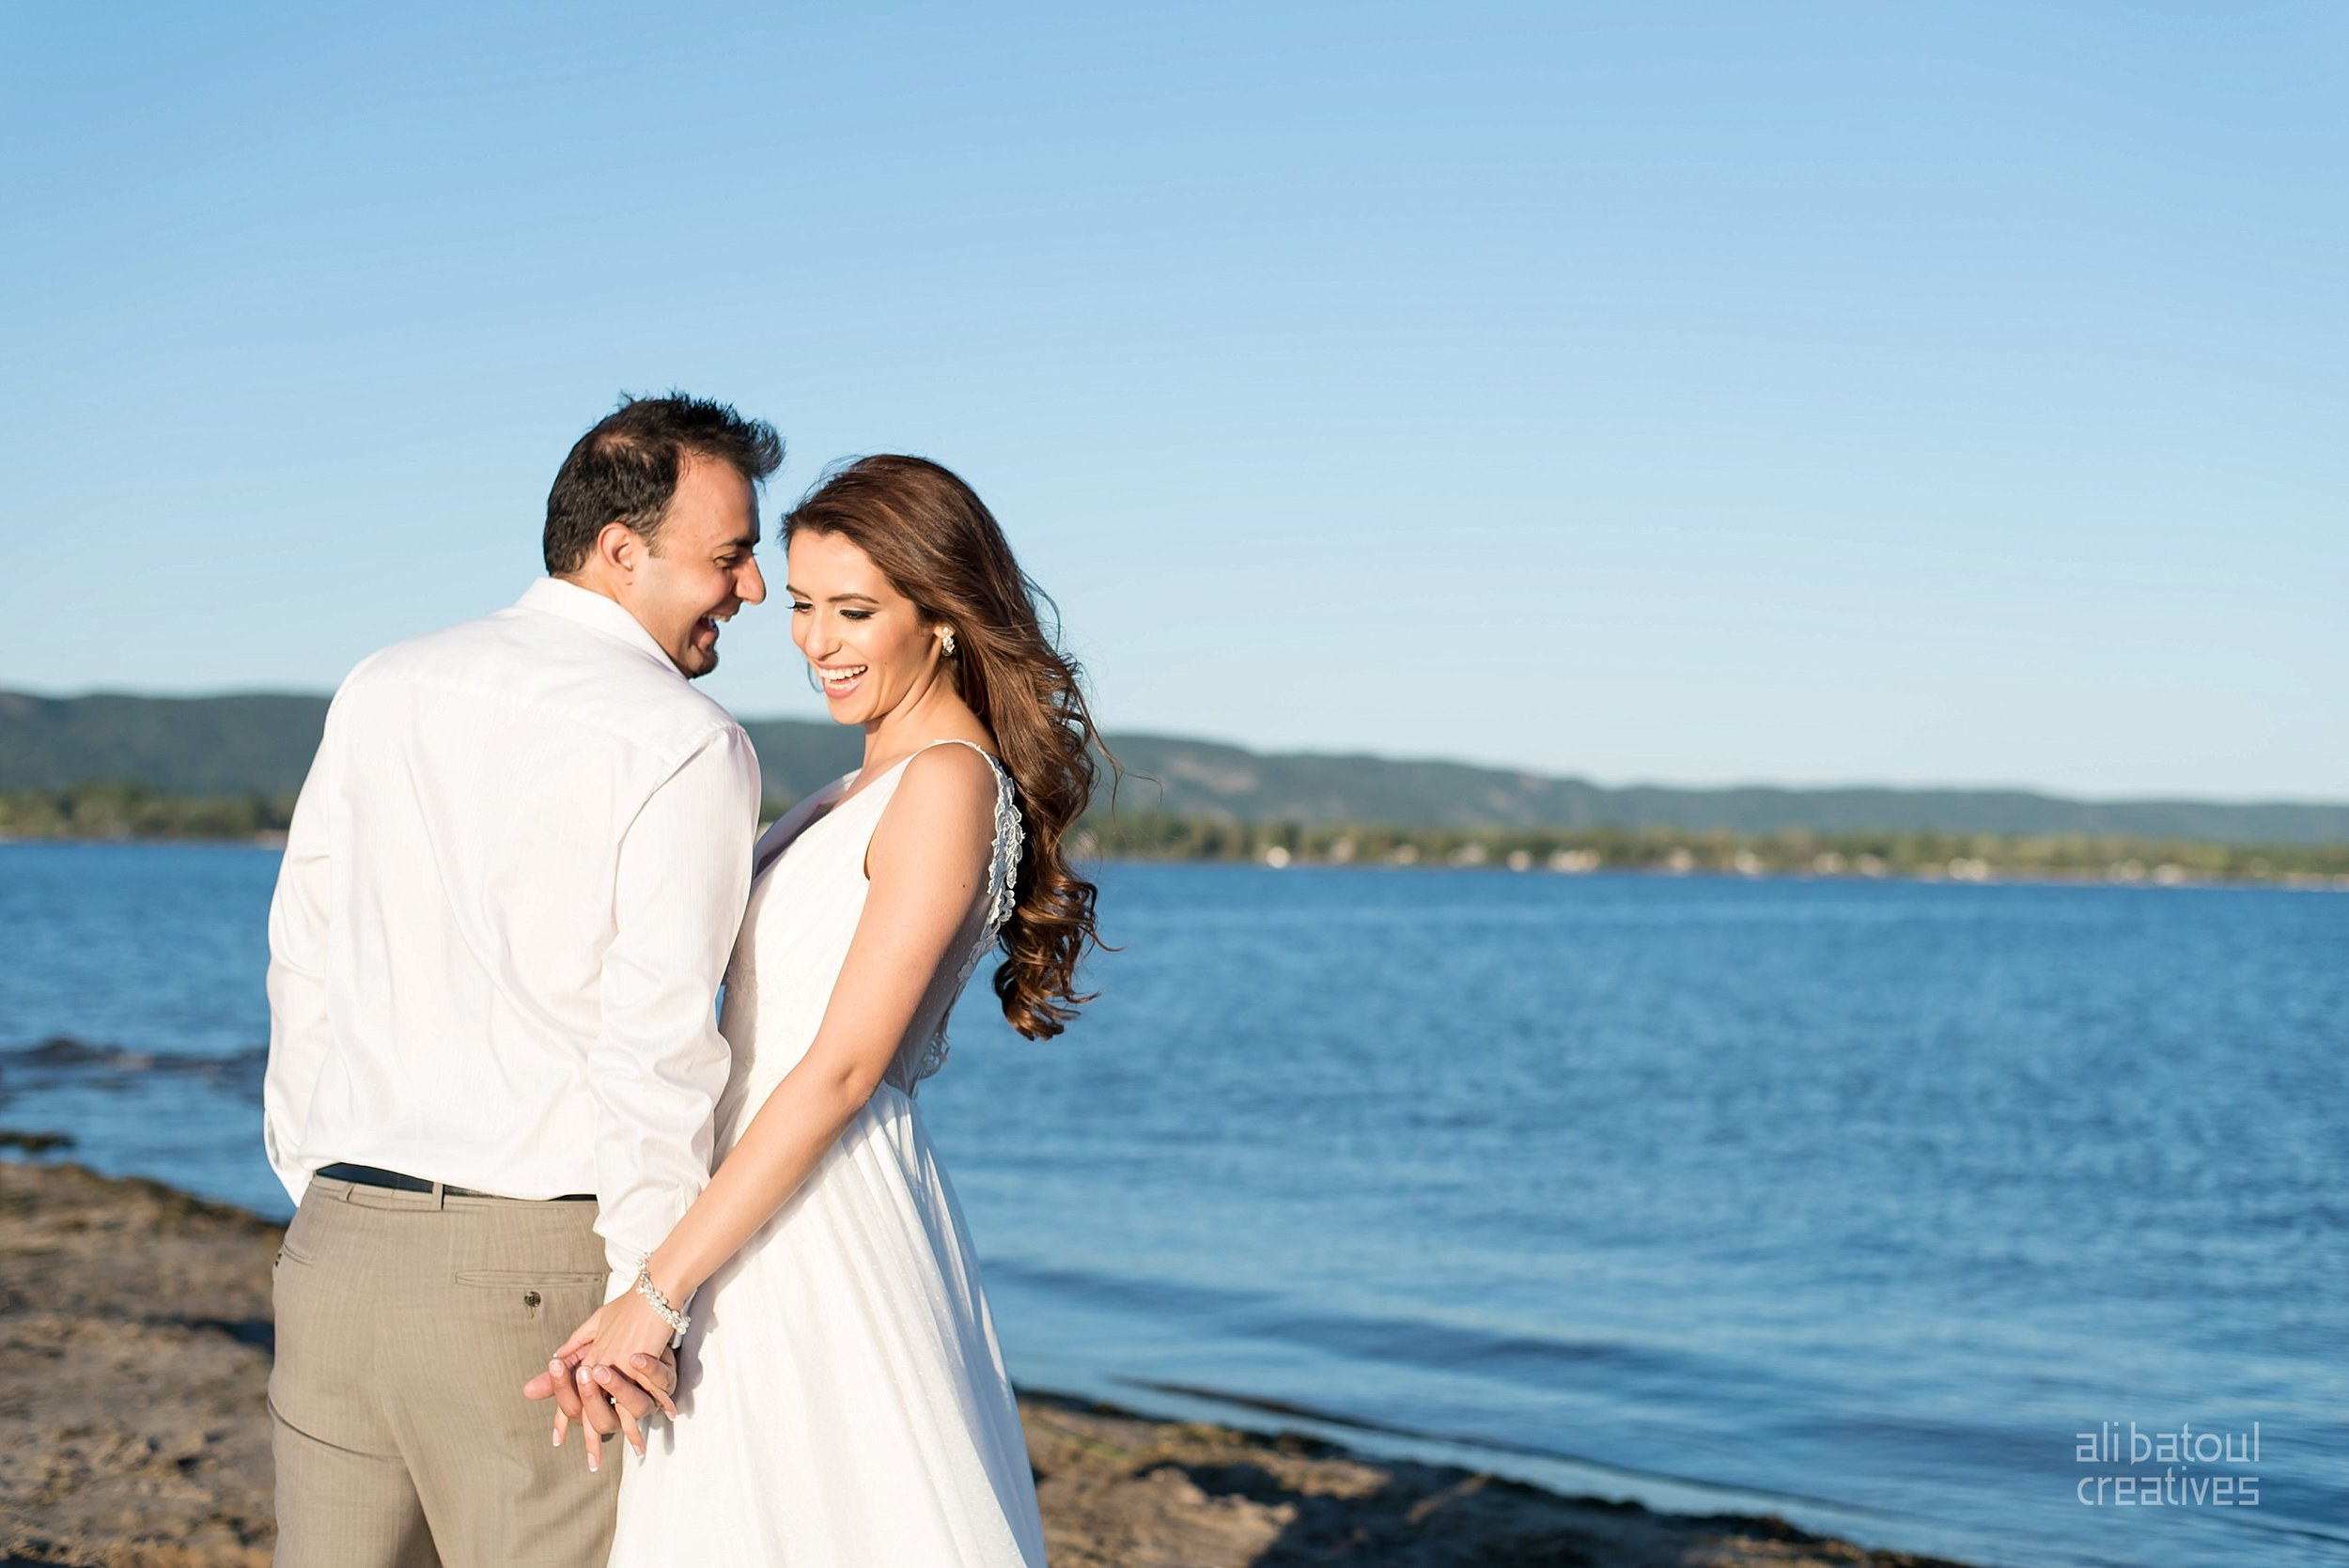 Alaa + Jad - Ottawa Beach Bridal Shoot (Ali Batoul Creatives)-101_Stomped.jpg